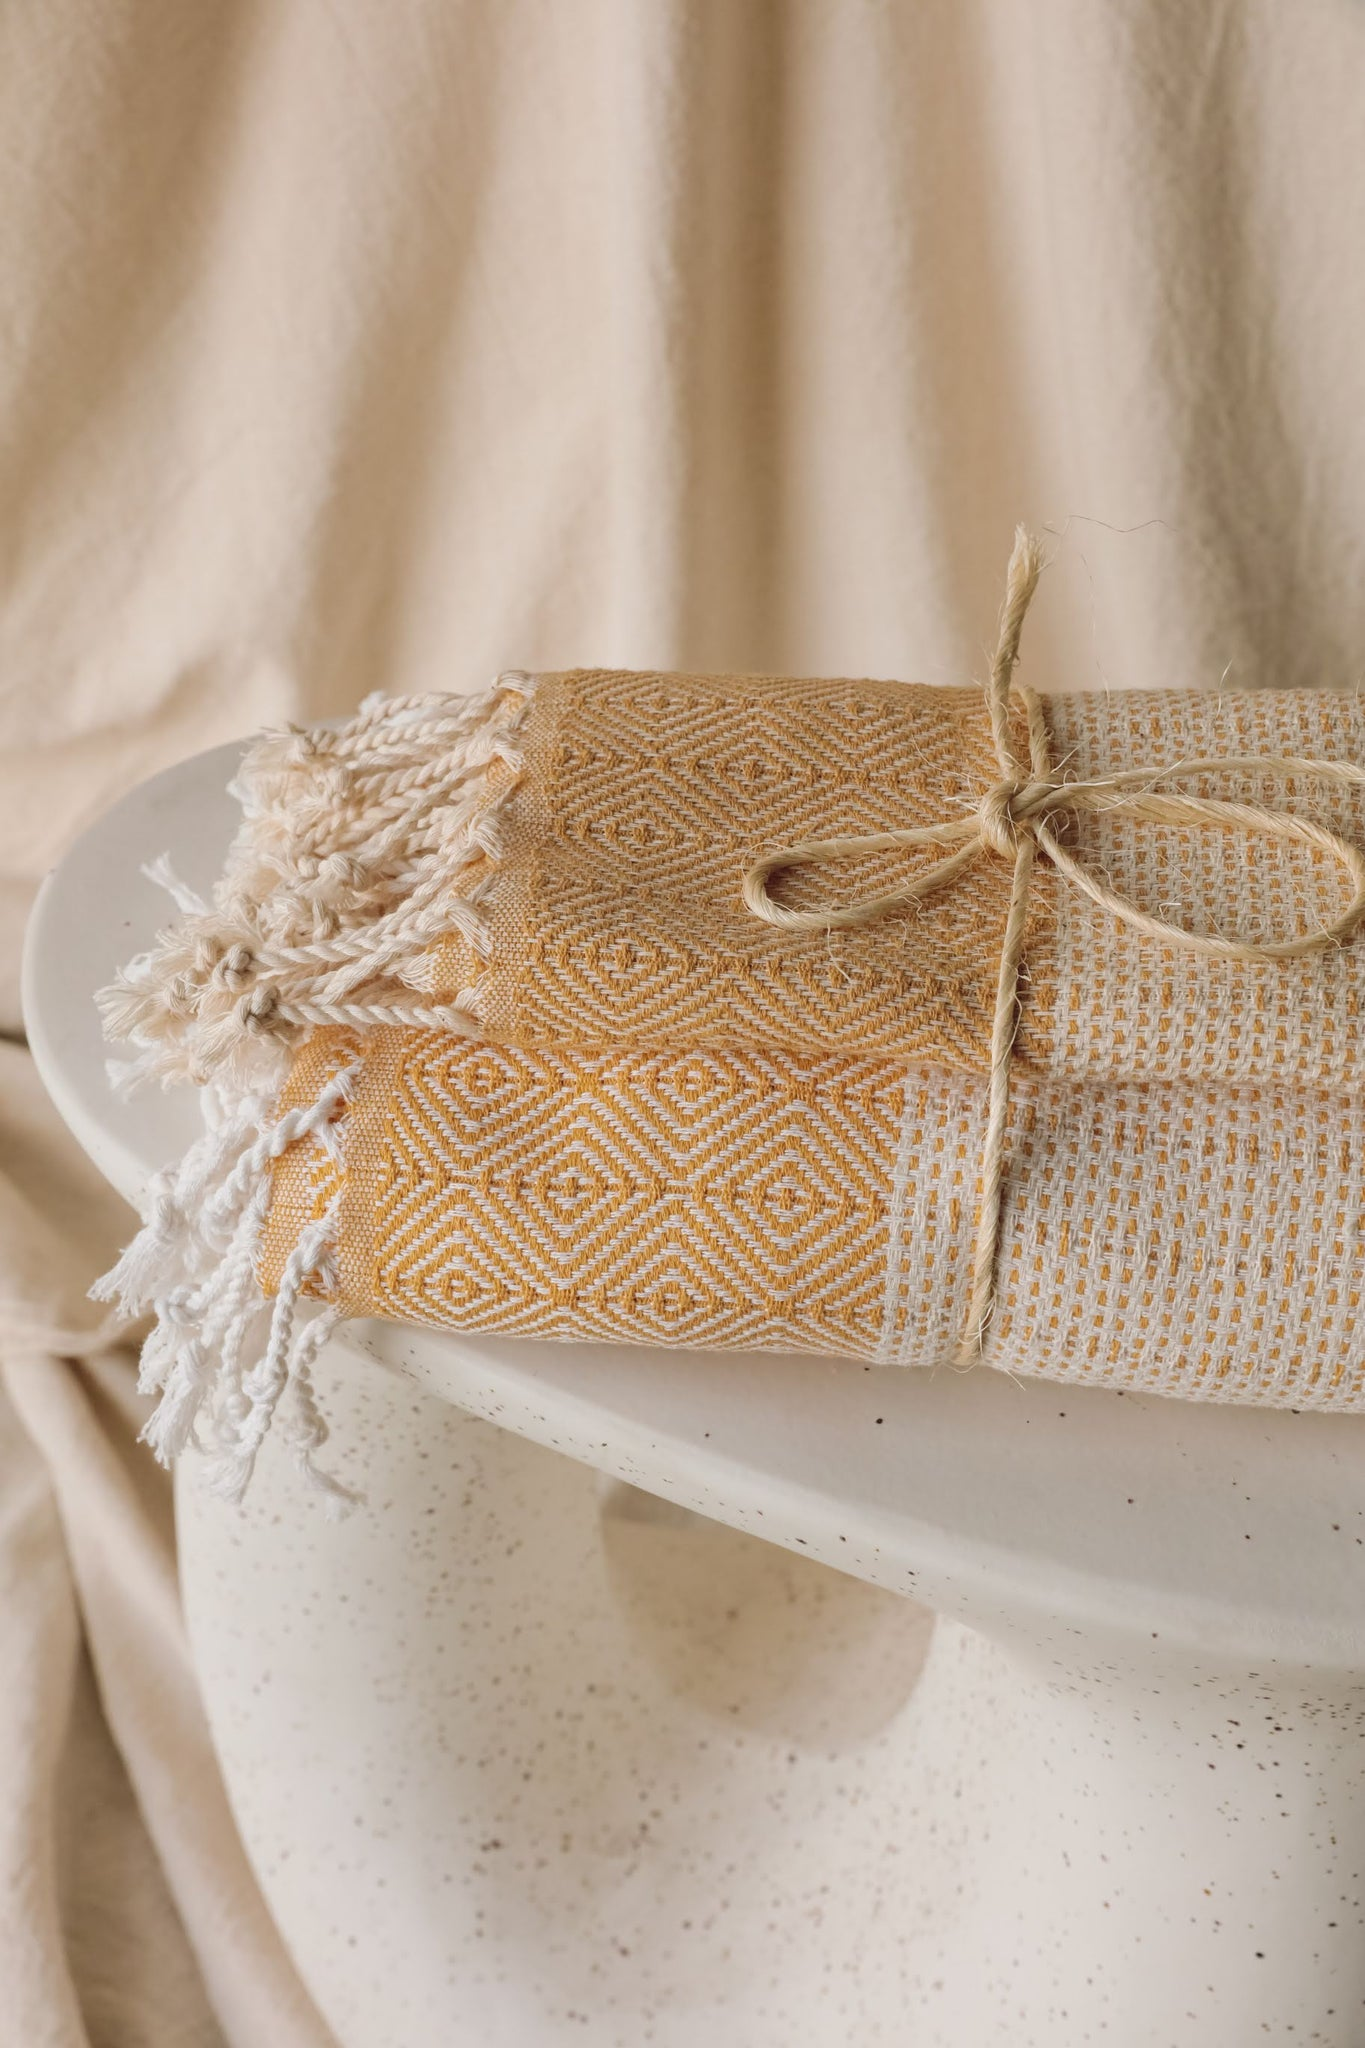 Limited Edition Hazal Bath + Tea towel Set